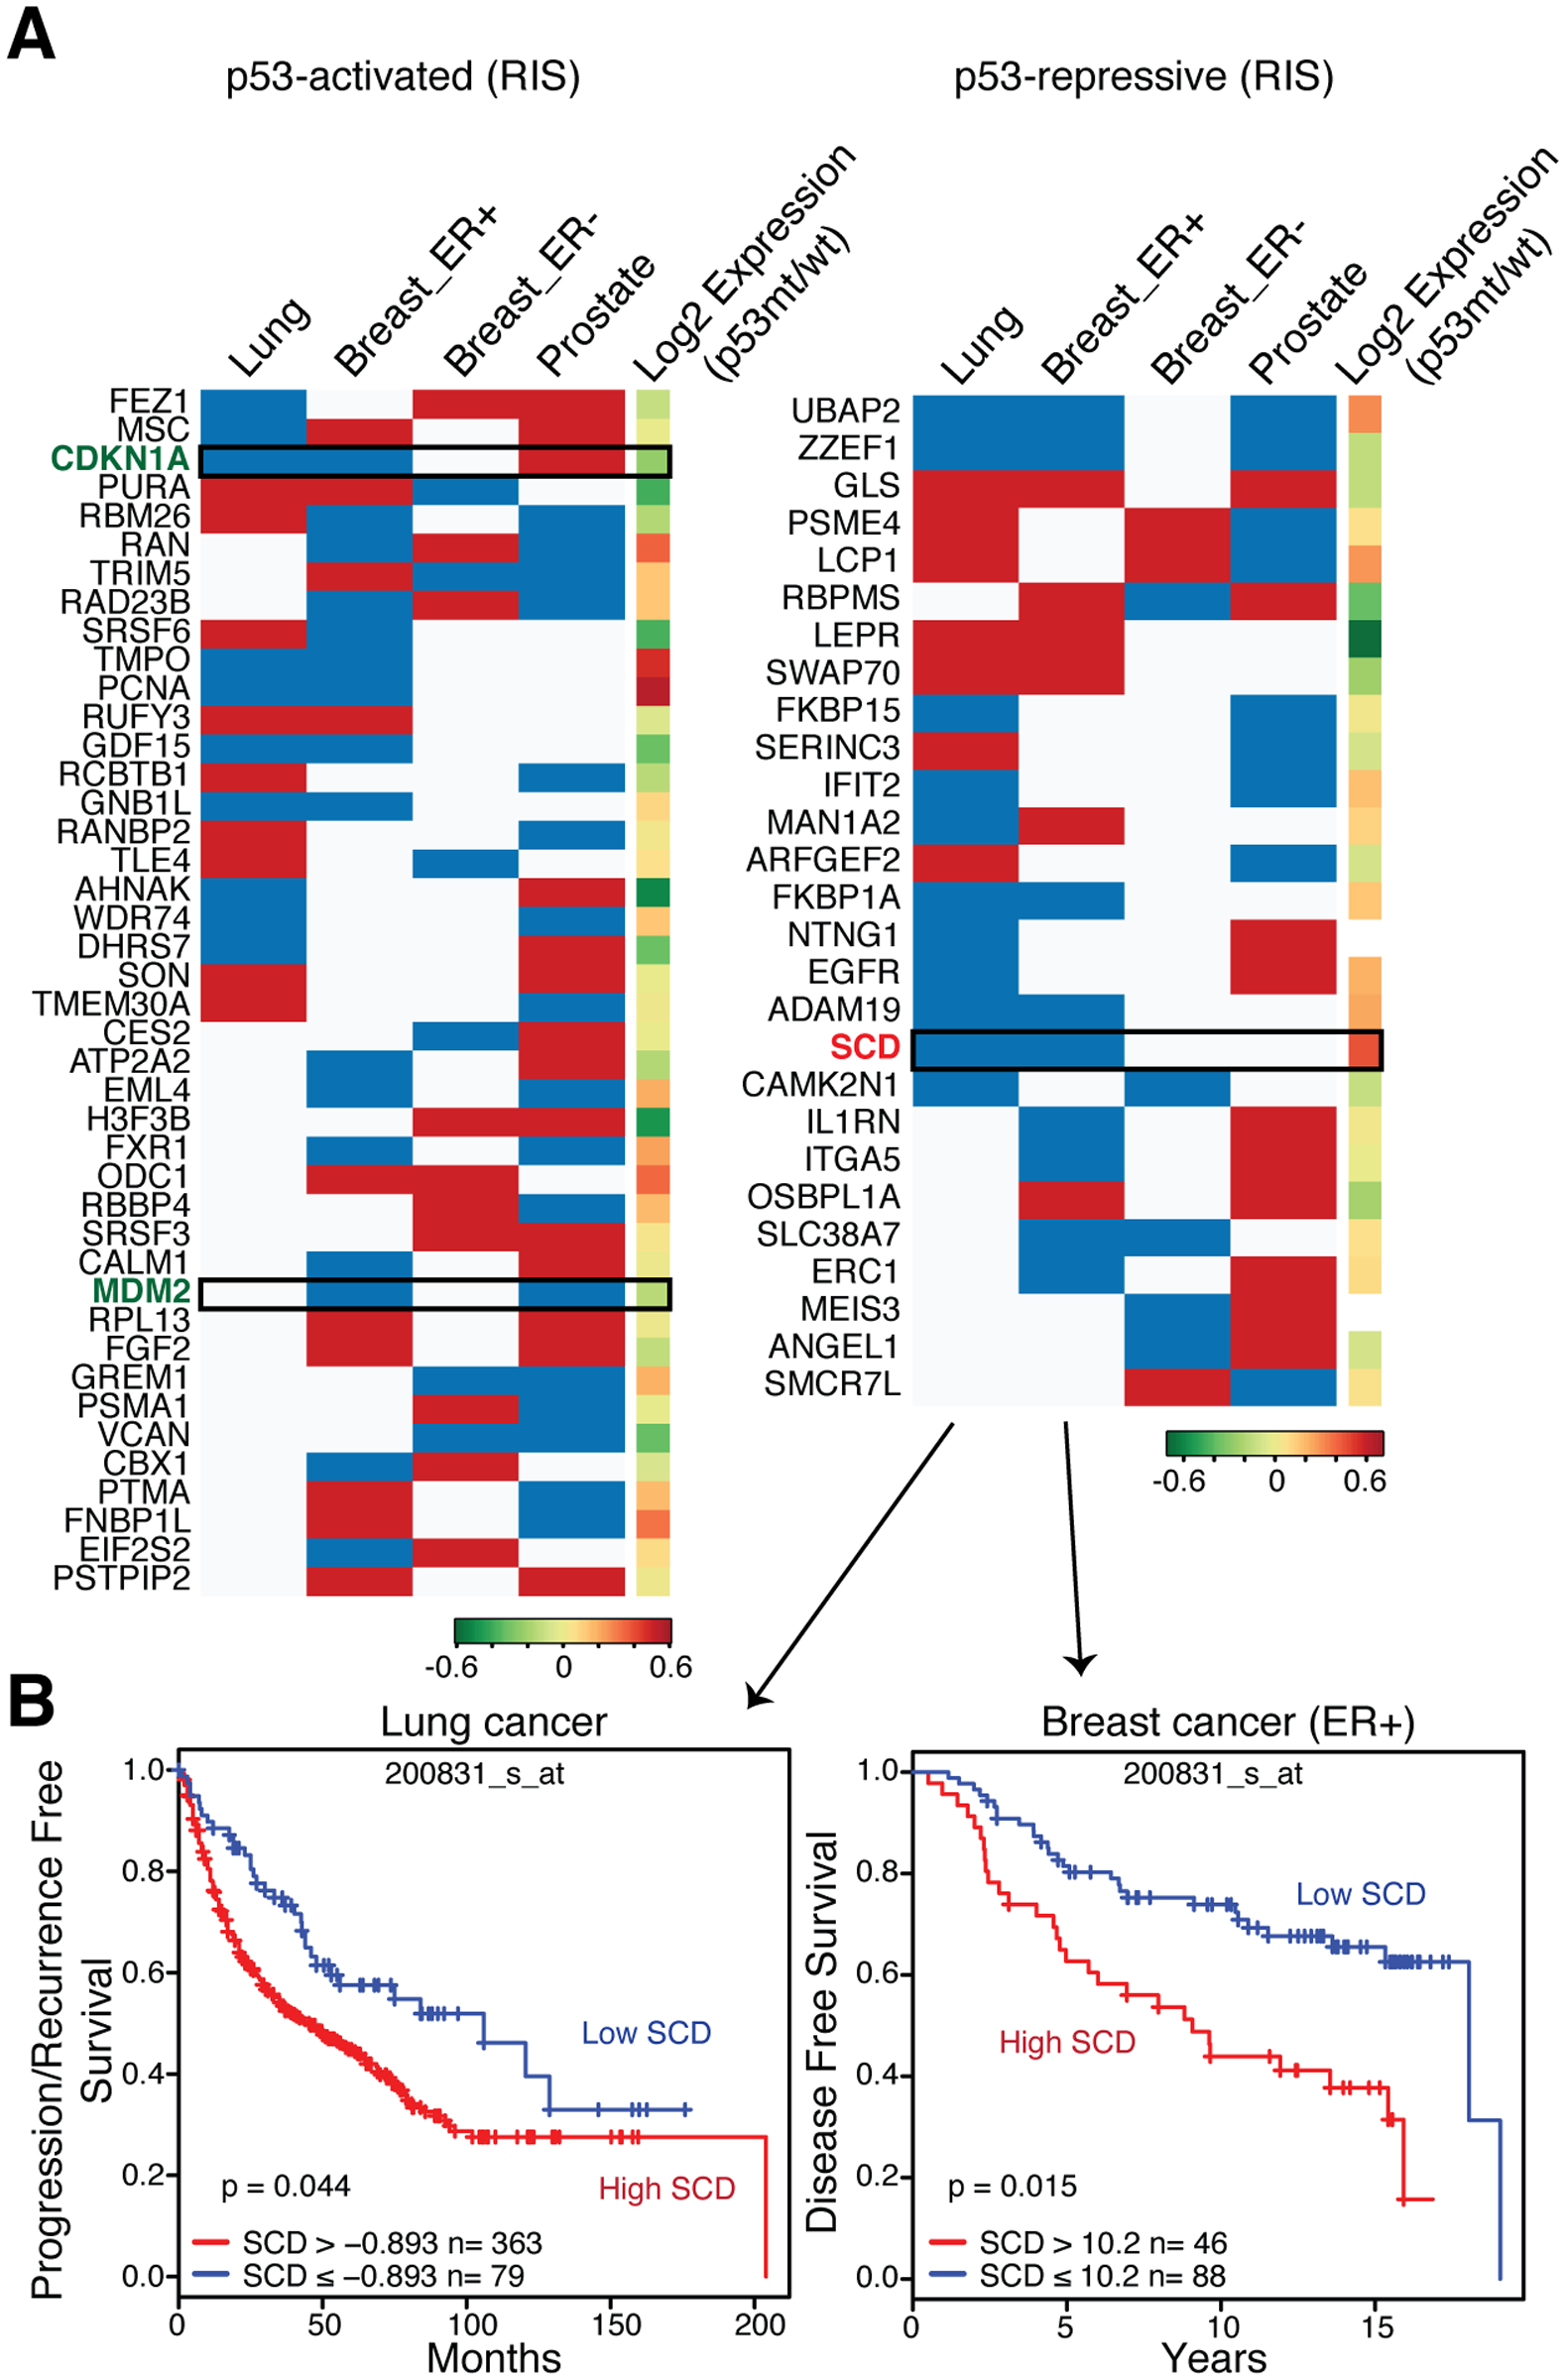 Prognostic role of Rcade-derived p53-targets in cancer.